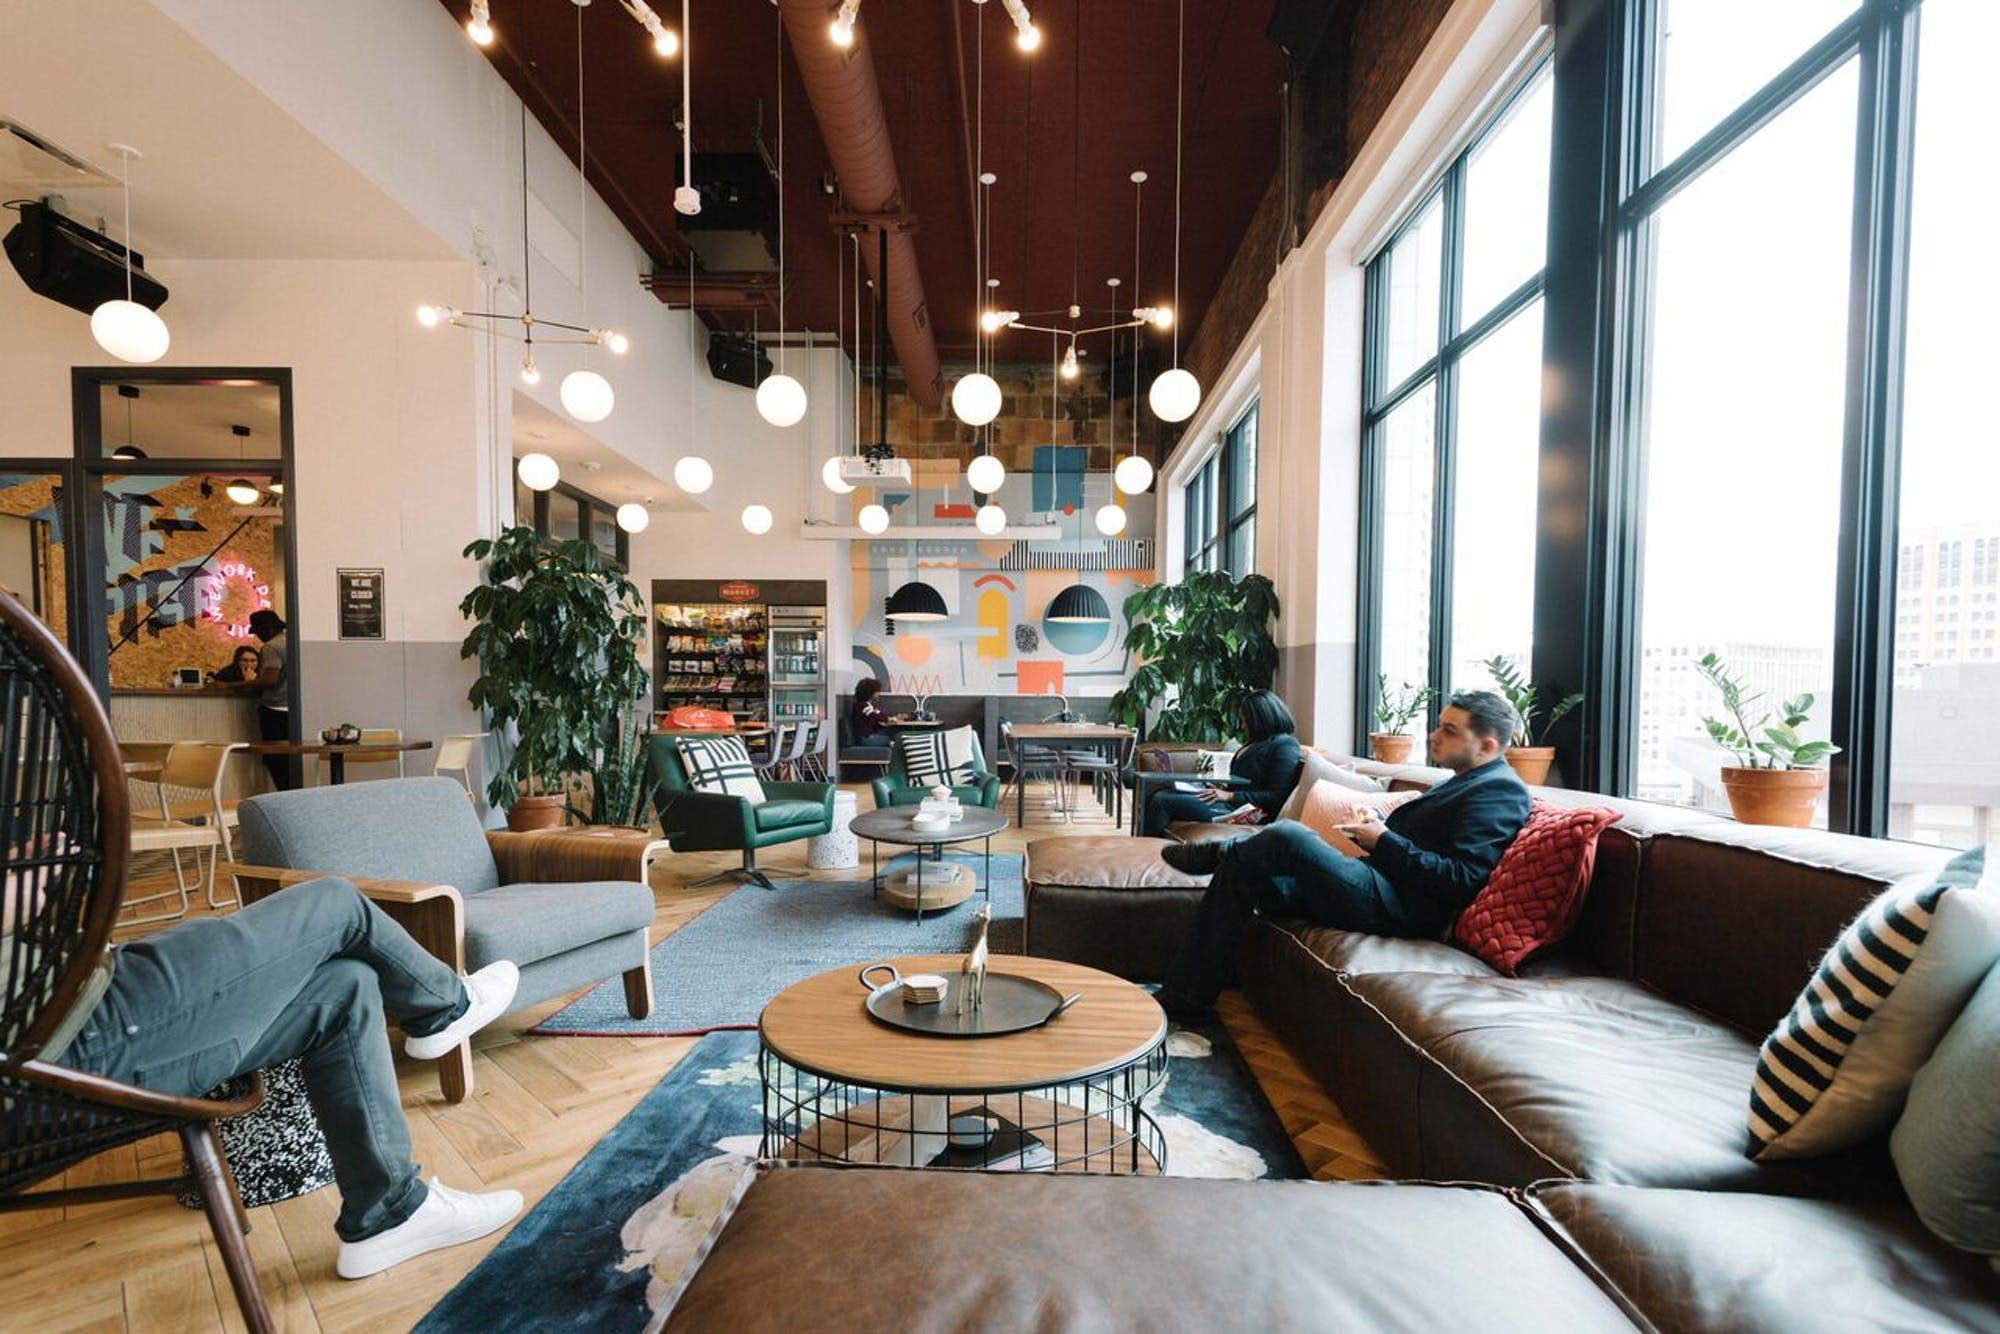 WeWork 125 West 25th Street, NYC